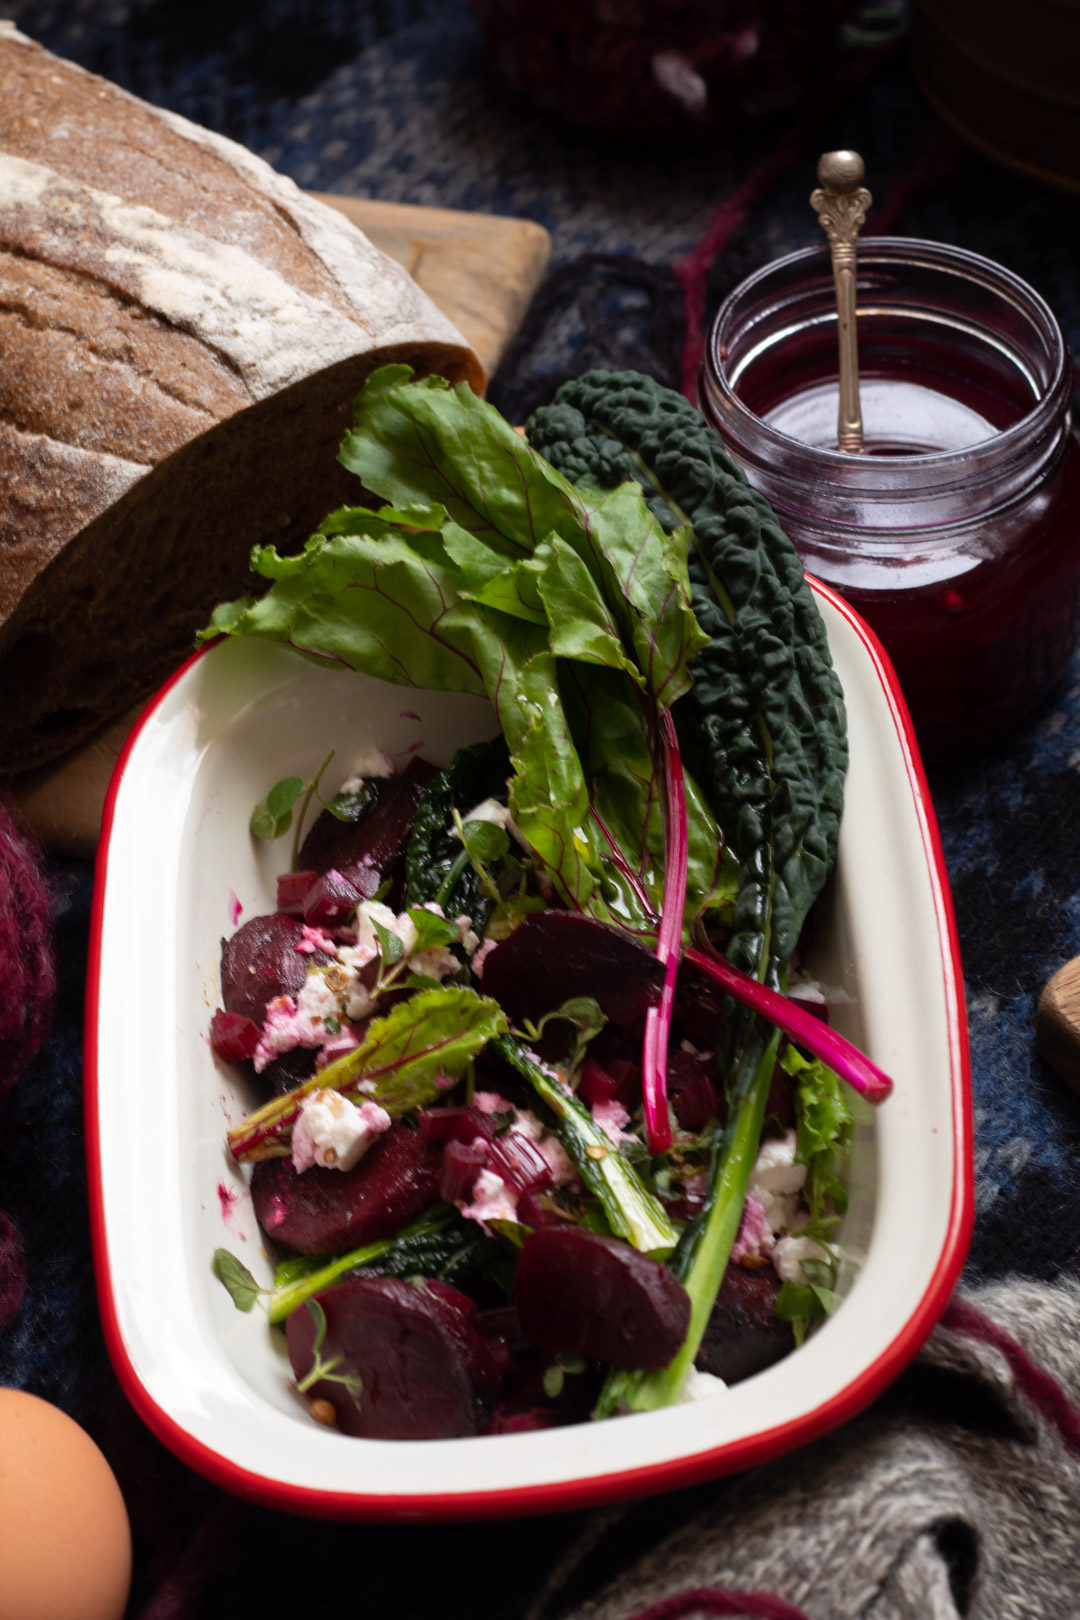 beetroot salad picnic: roasted beetroot, beetroot stem quick pickle, beetroot leaves - use up all of your beetroot